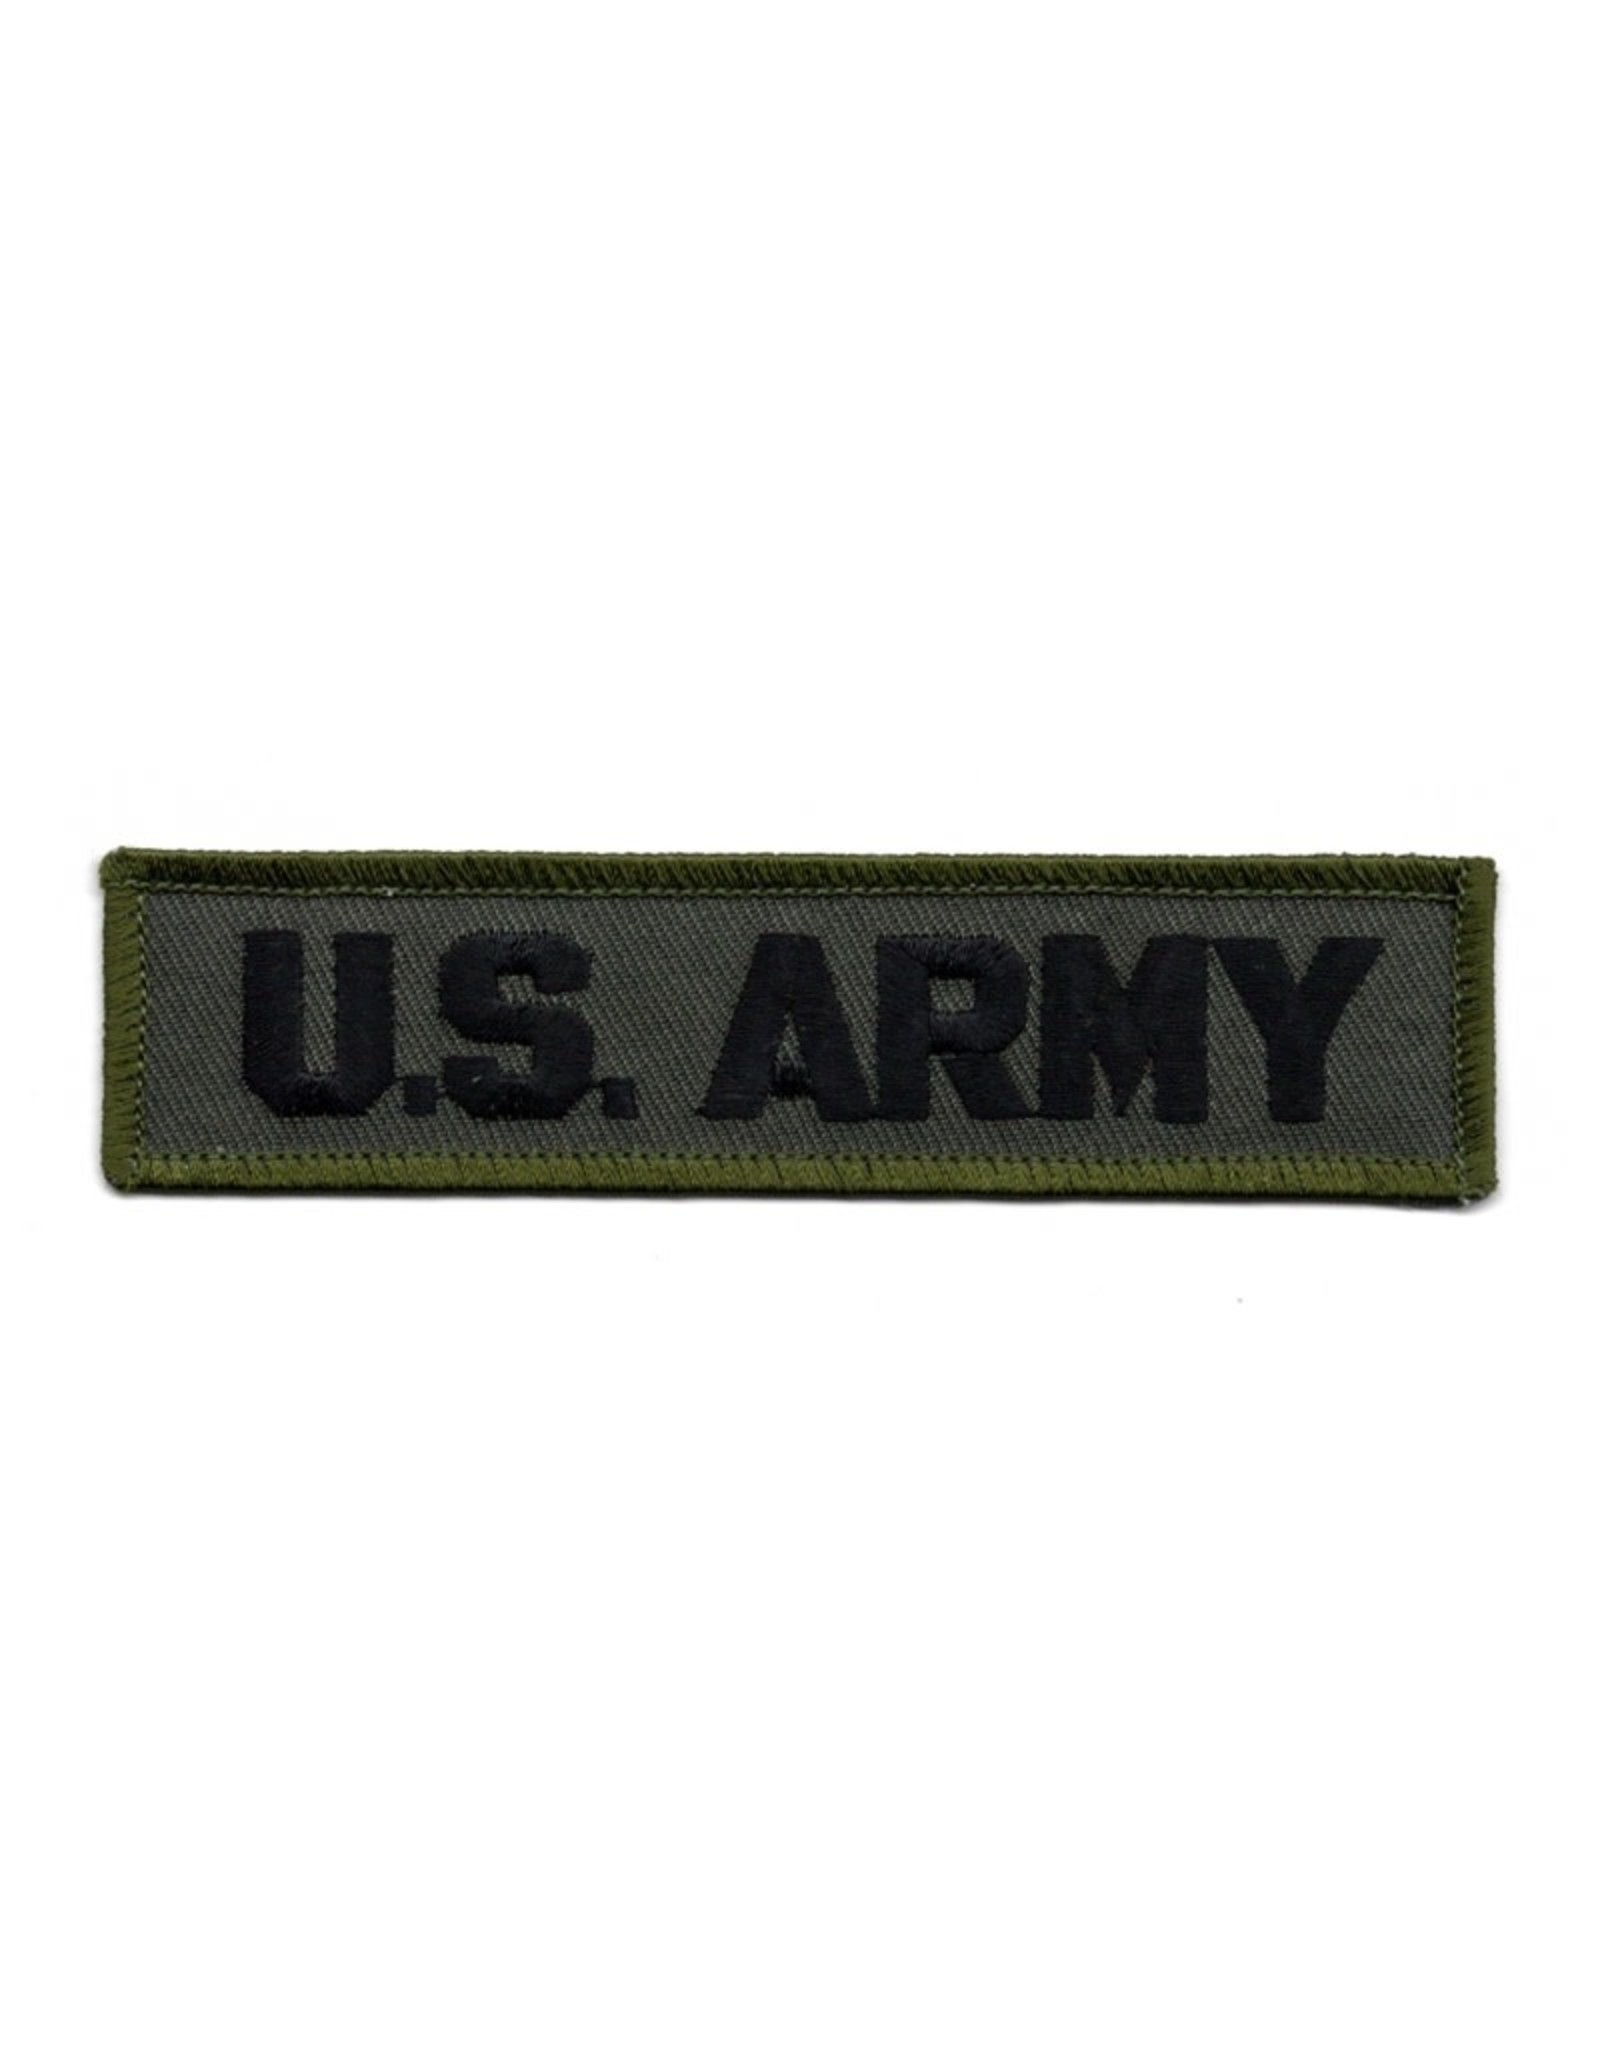 "MidMil Embroidered Subdued U. S. Army Patch 4.6"" wide x 1.1"" high Black on Olive Drab"